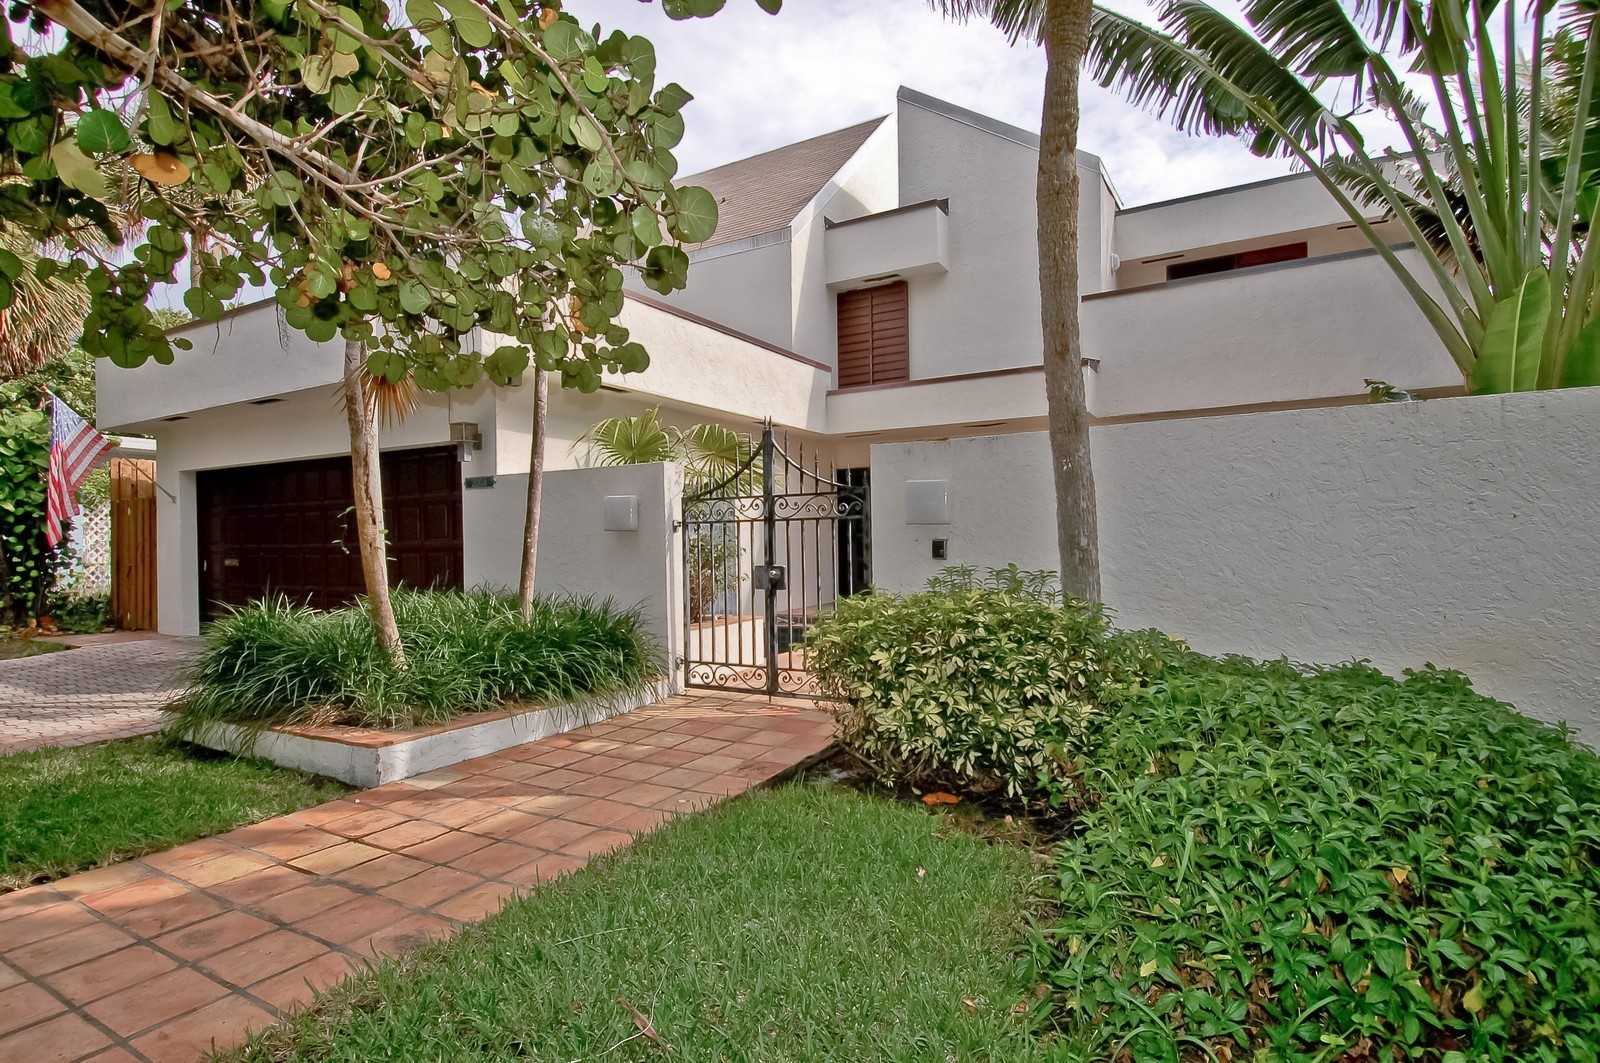 Real Estate Photography - 2004 Bay Dr, Pompano Beach, FL, 33062 - Front View